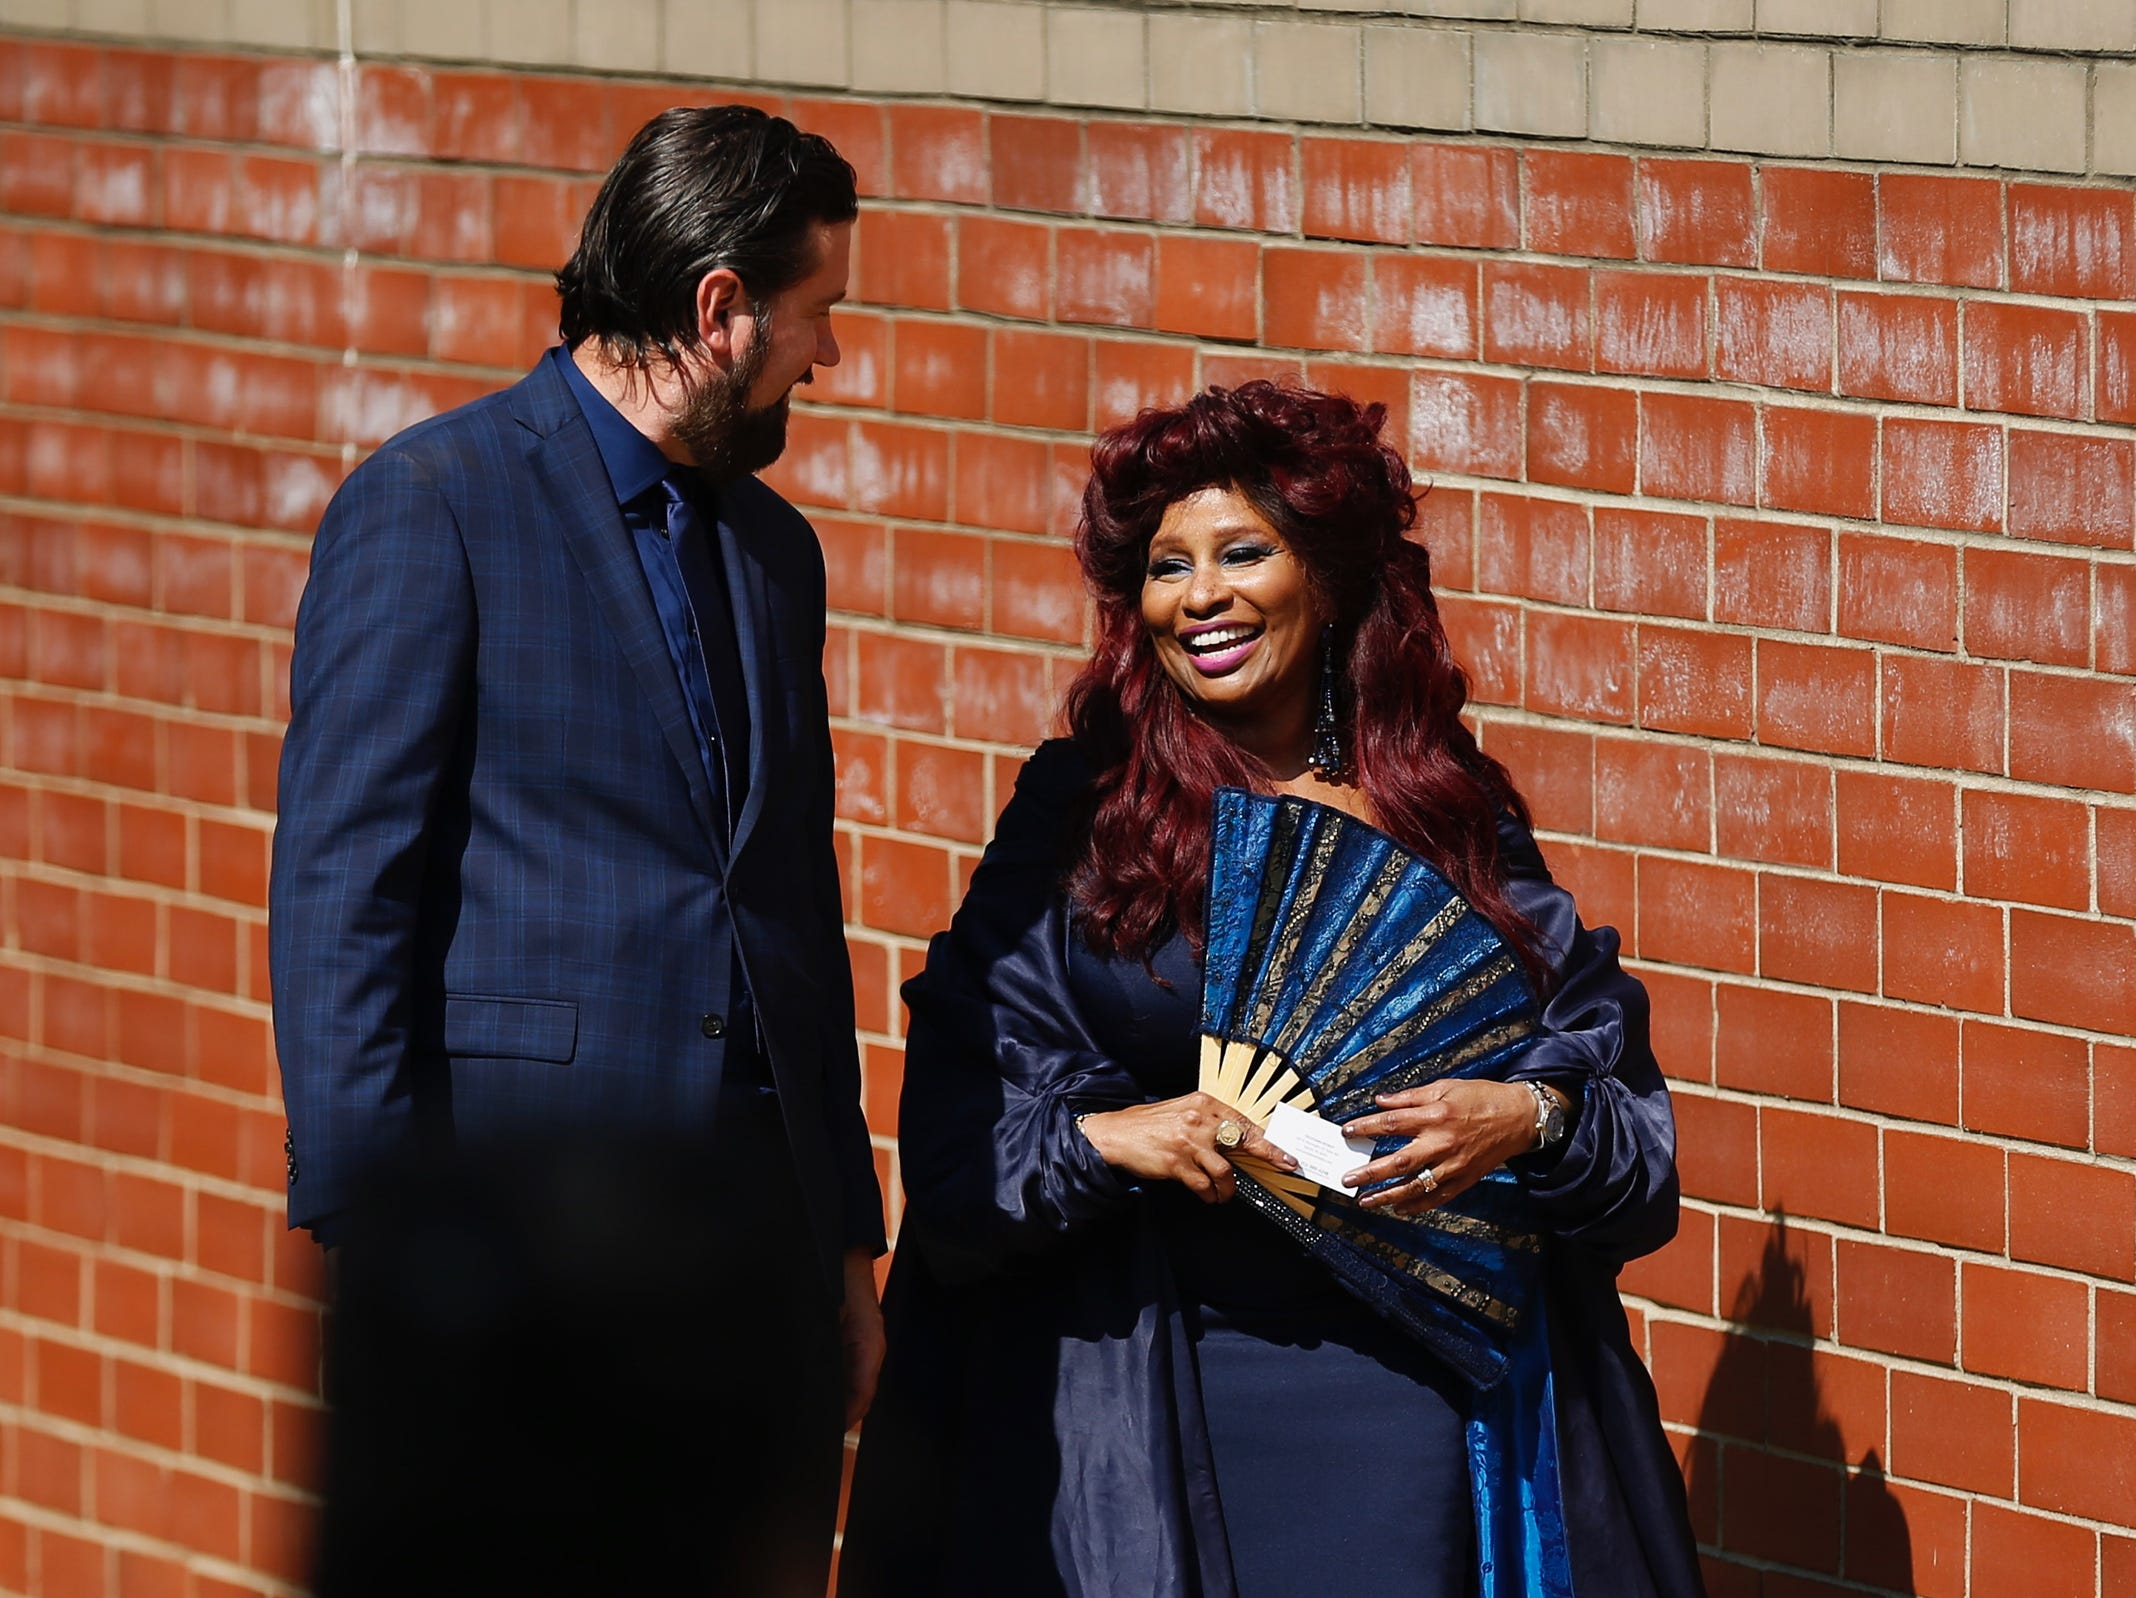 Chaka Kahn smiles as she exits Aretha Franklin's funeral at Greater Grace Temple in Detroit on Friday, August 31, 2018.